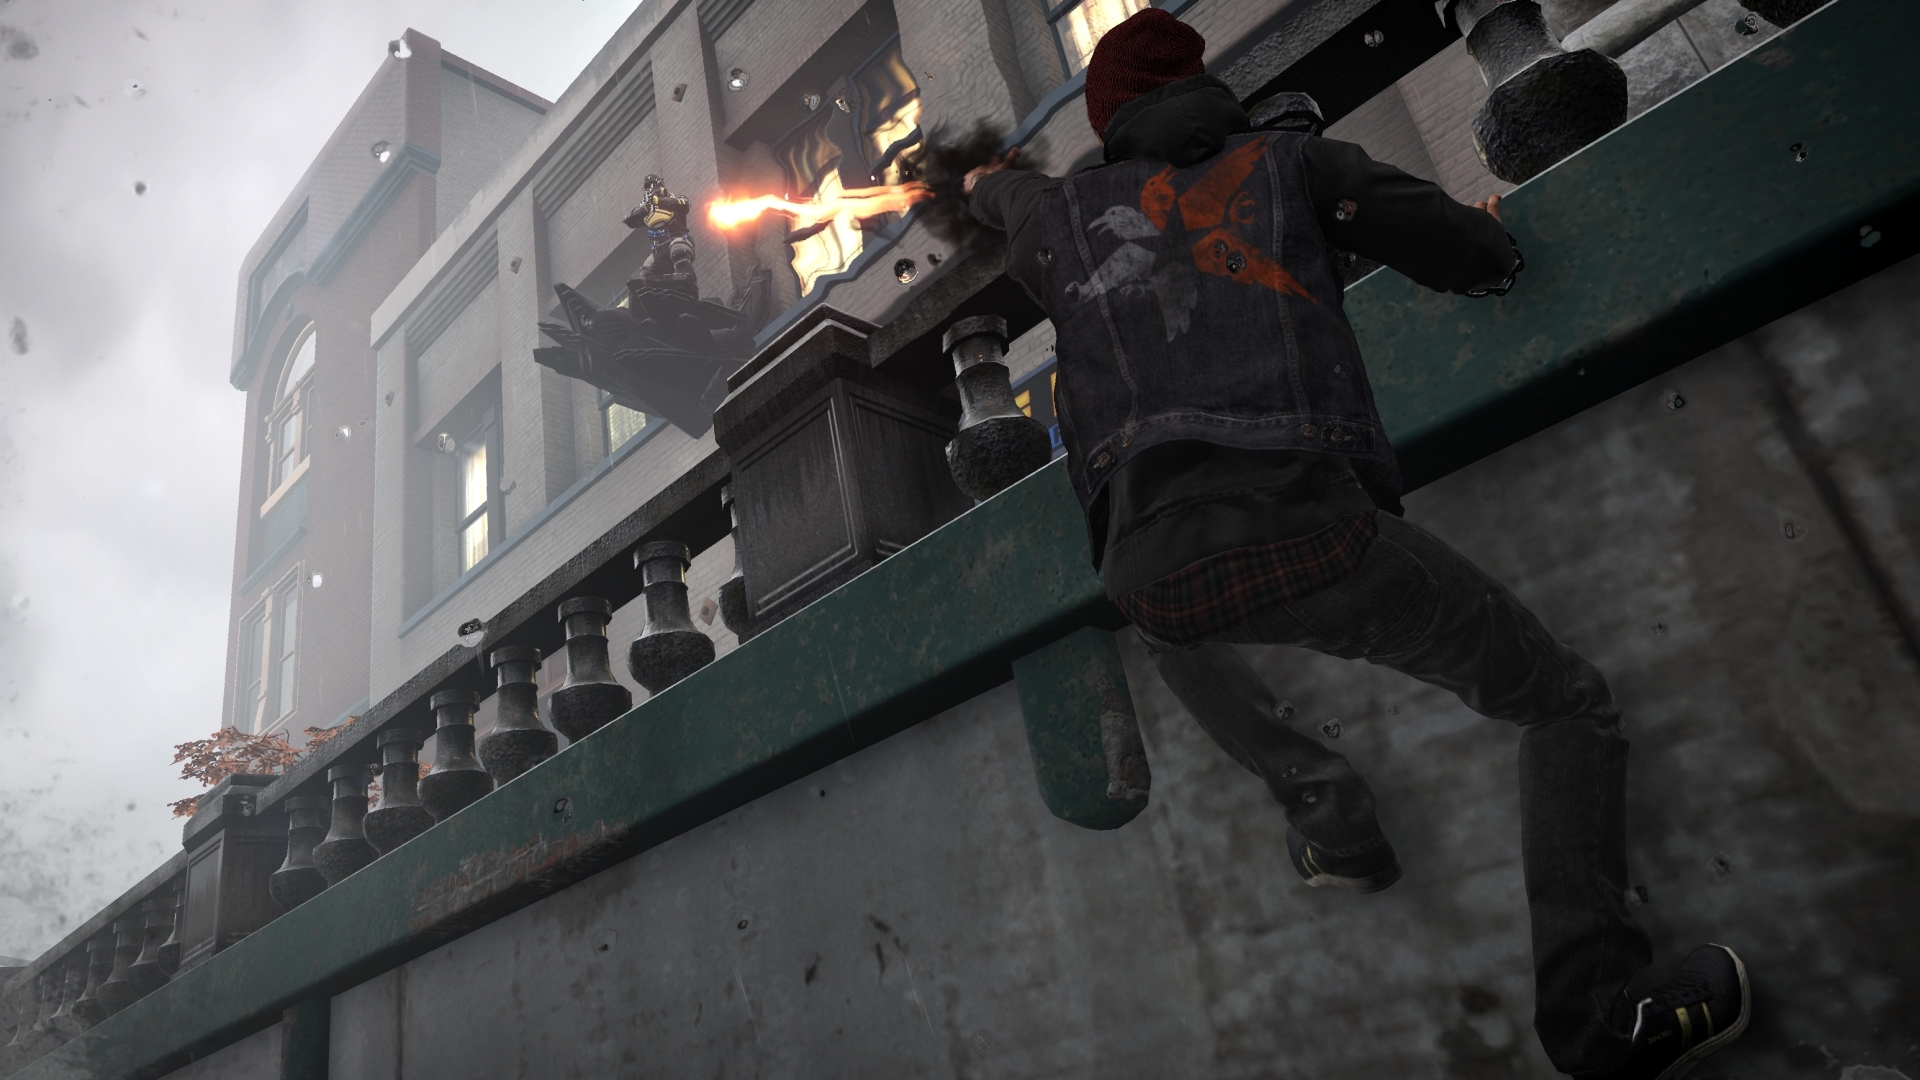 infamous-second-son_2edpev.jpg